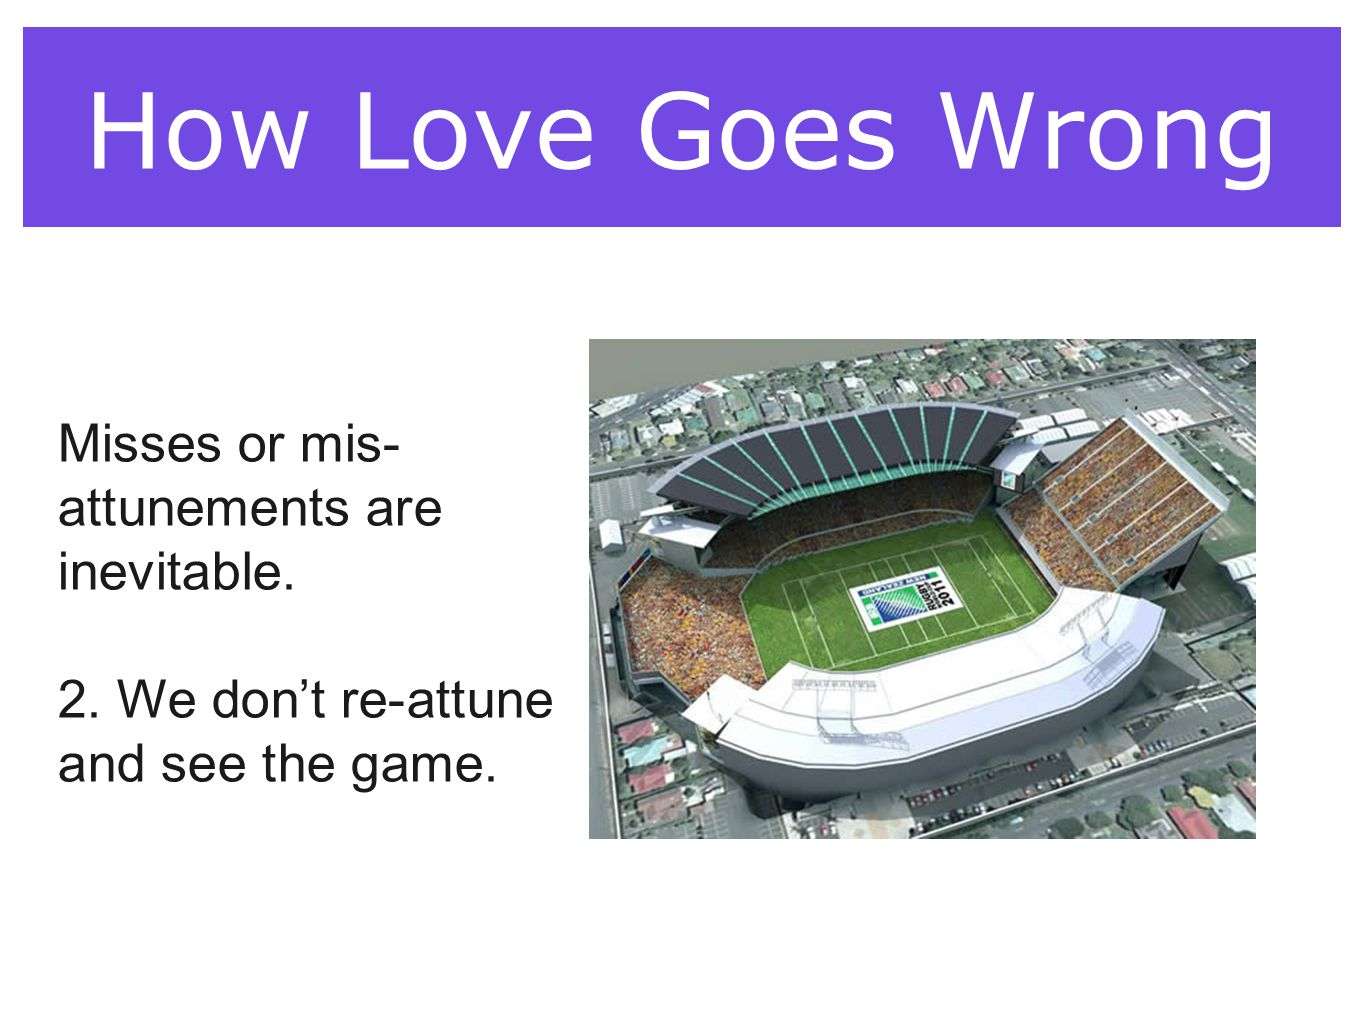 How Love Goes Wrong: The Demon Dialogues How Love Goes Wrong Misses or mis- attunements are inevitable. 2. We don't re-attune and see the game.